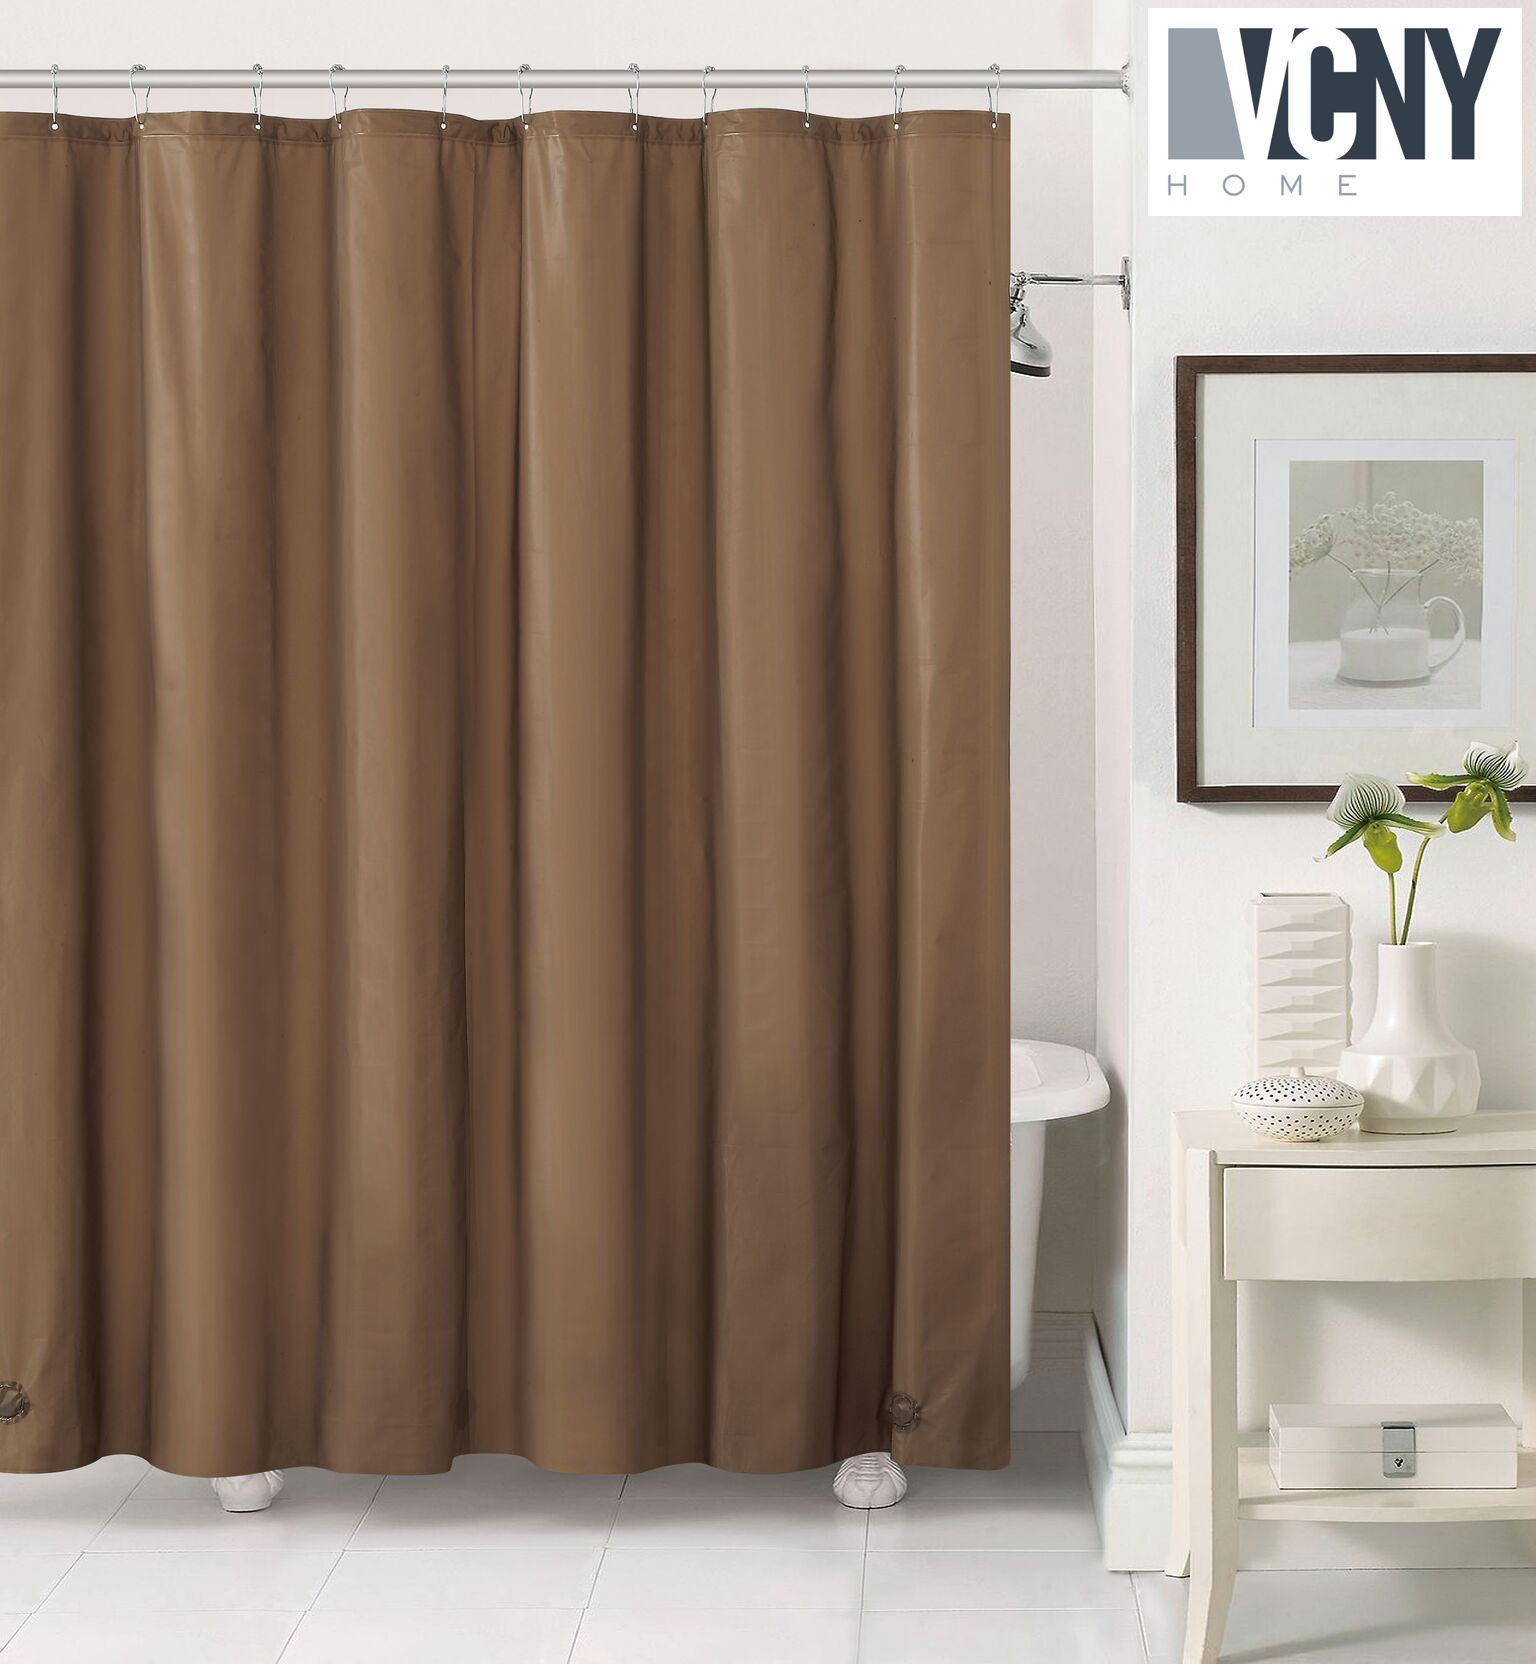 Gentil Peva Plastic Shower Curtain Liners With Magnets By Victoria Classics    Chocolate